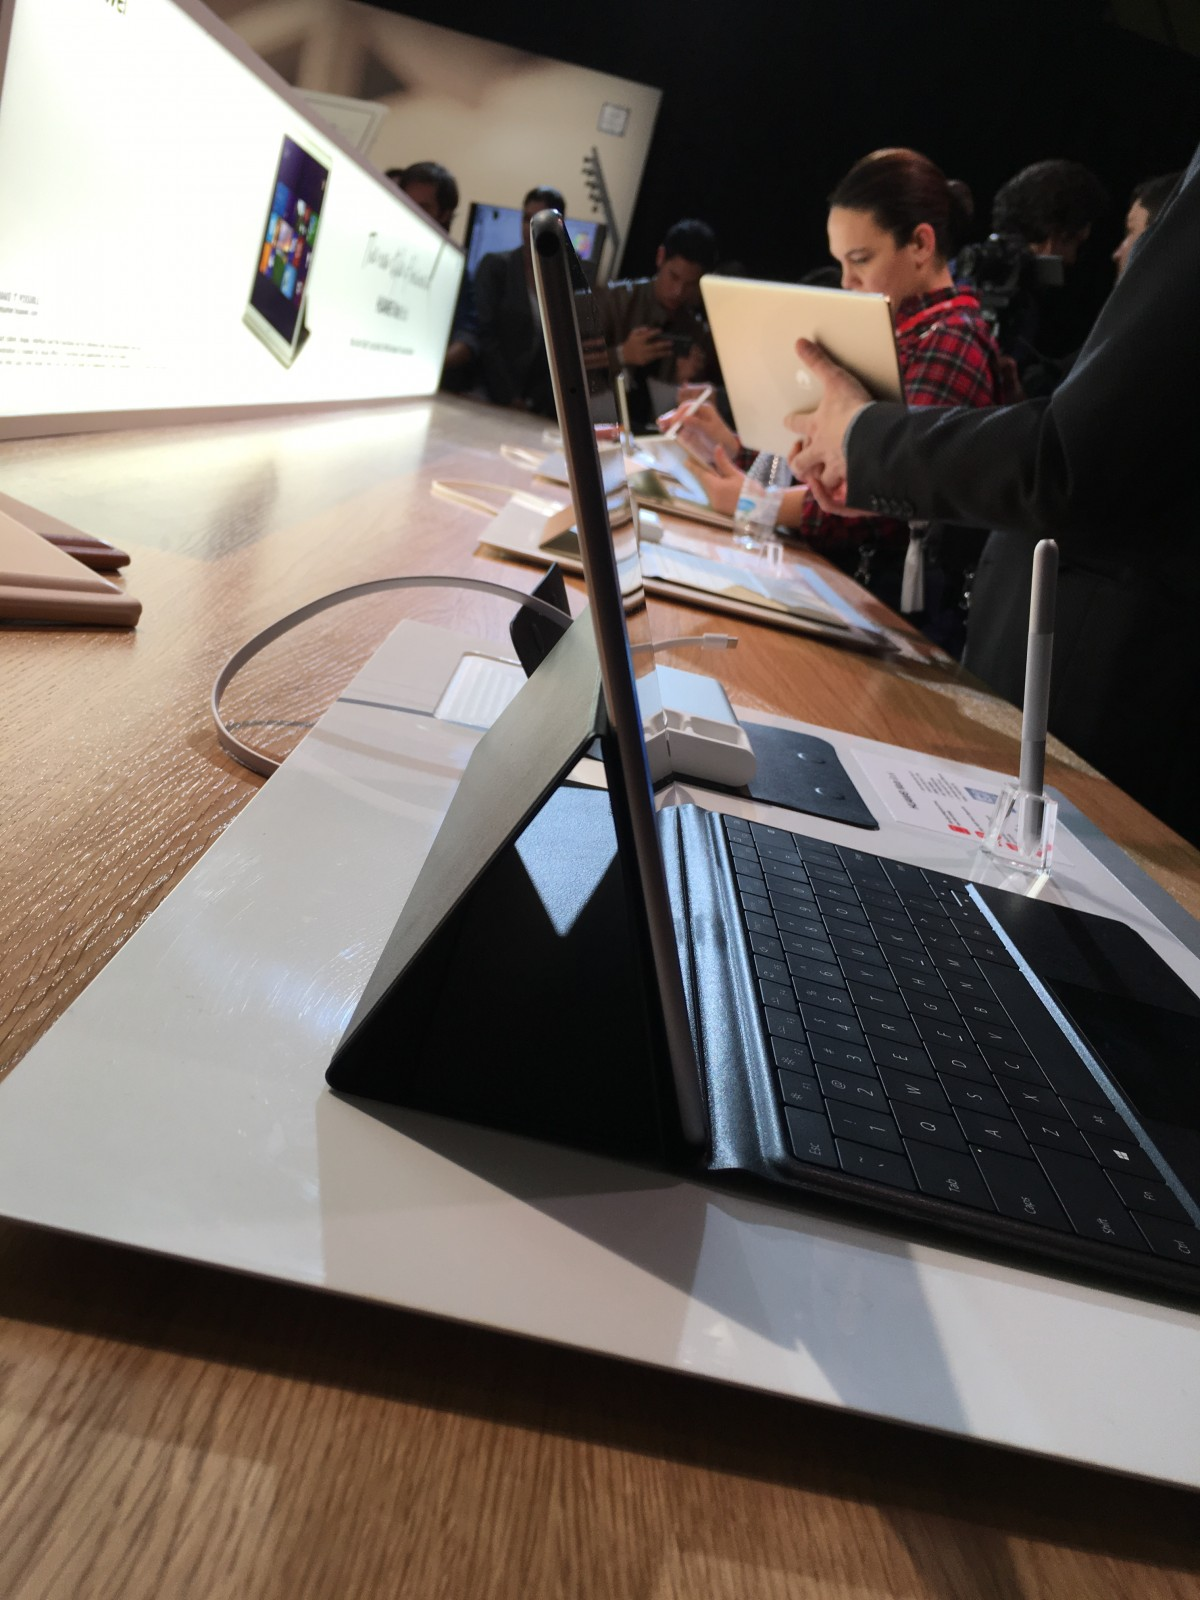 Huawei Enters PC Market With Super-Thin Windows 10 MateBook